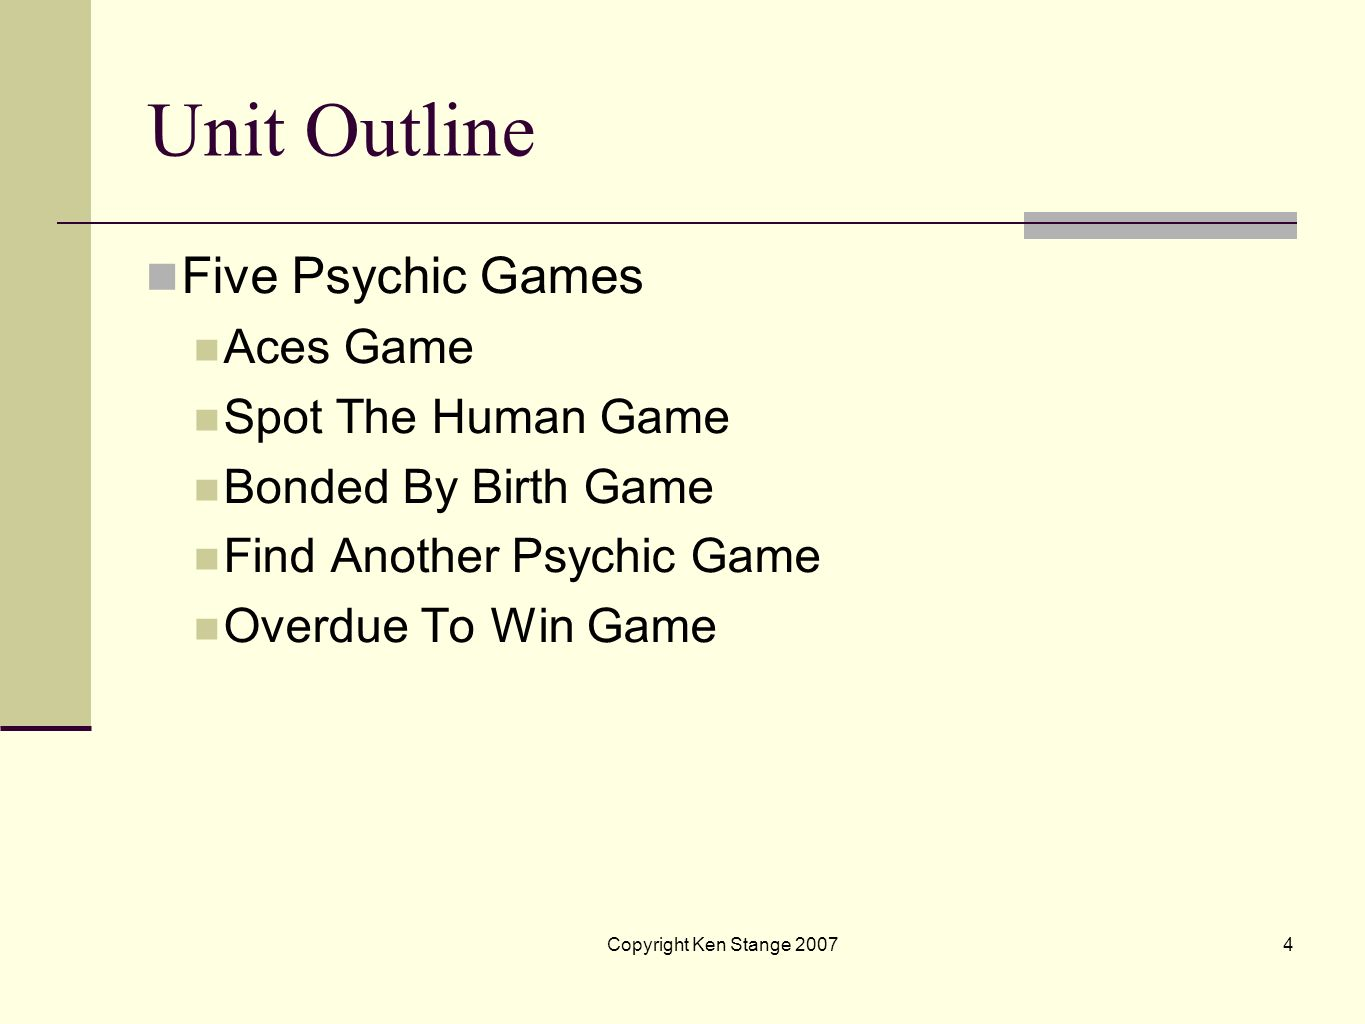 Unit Outline Five Psychic Games Aces Game Spot The Human Game